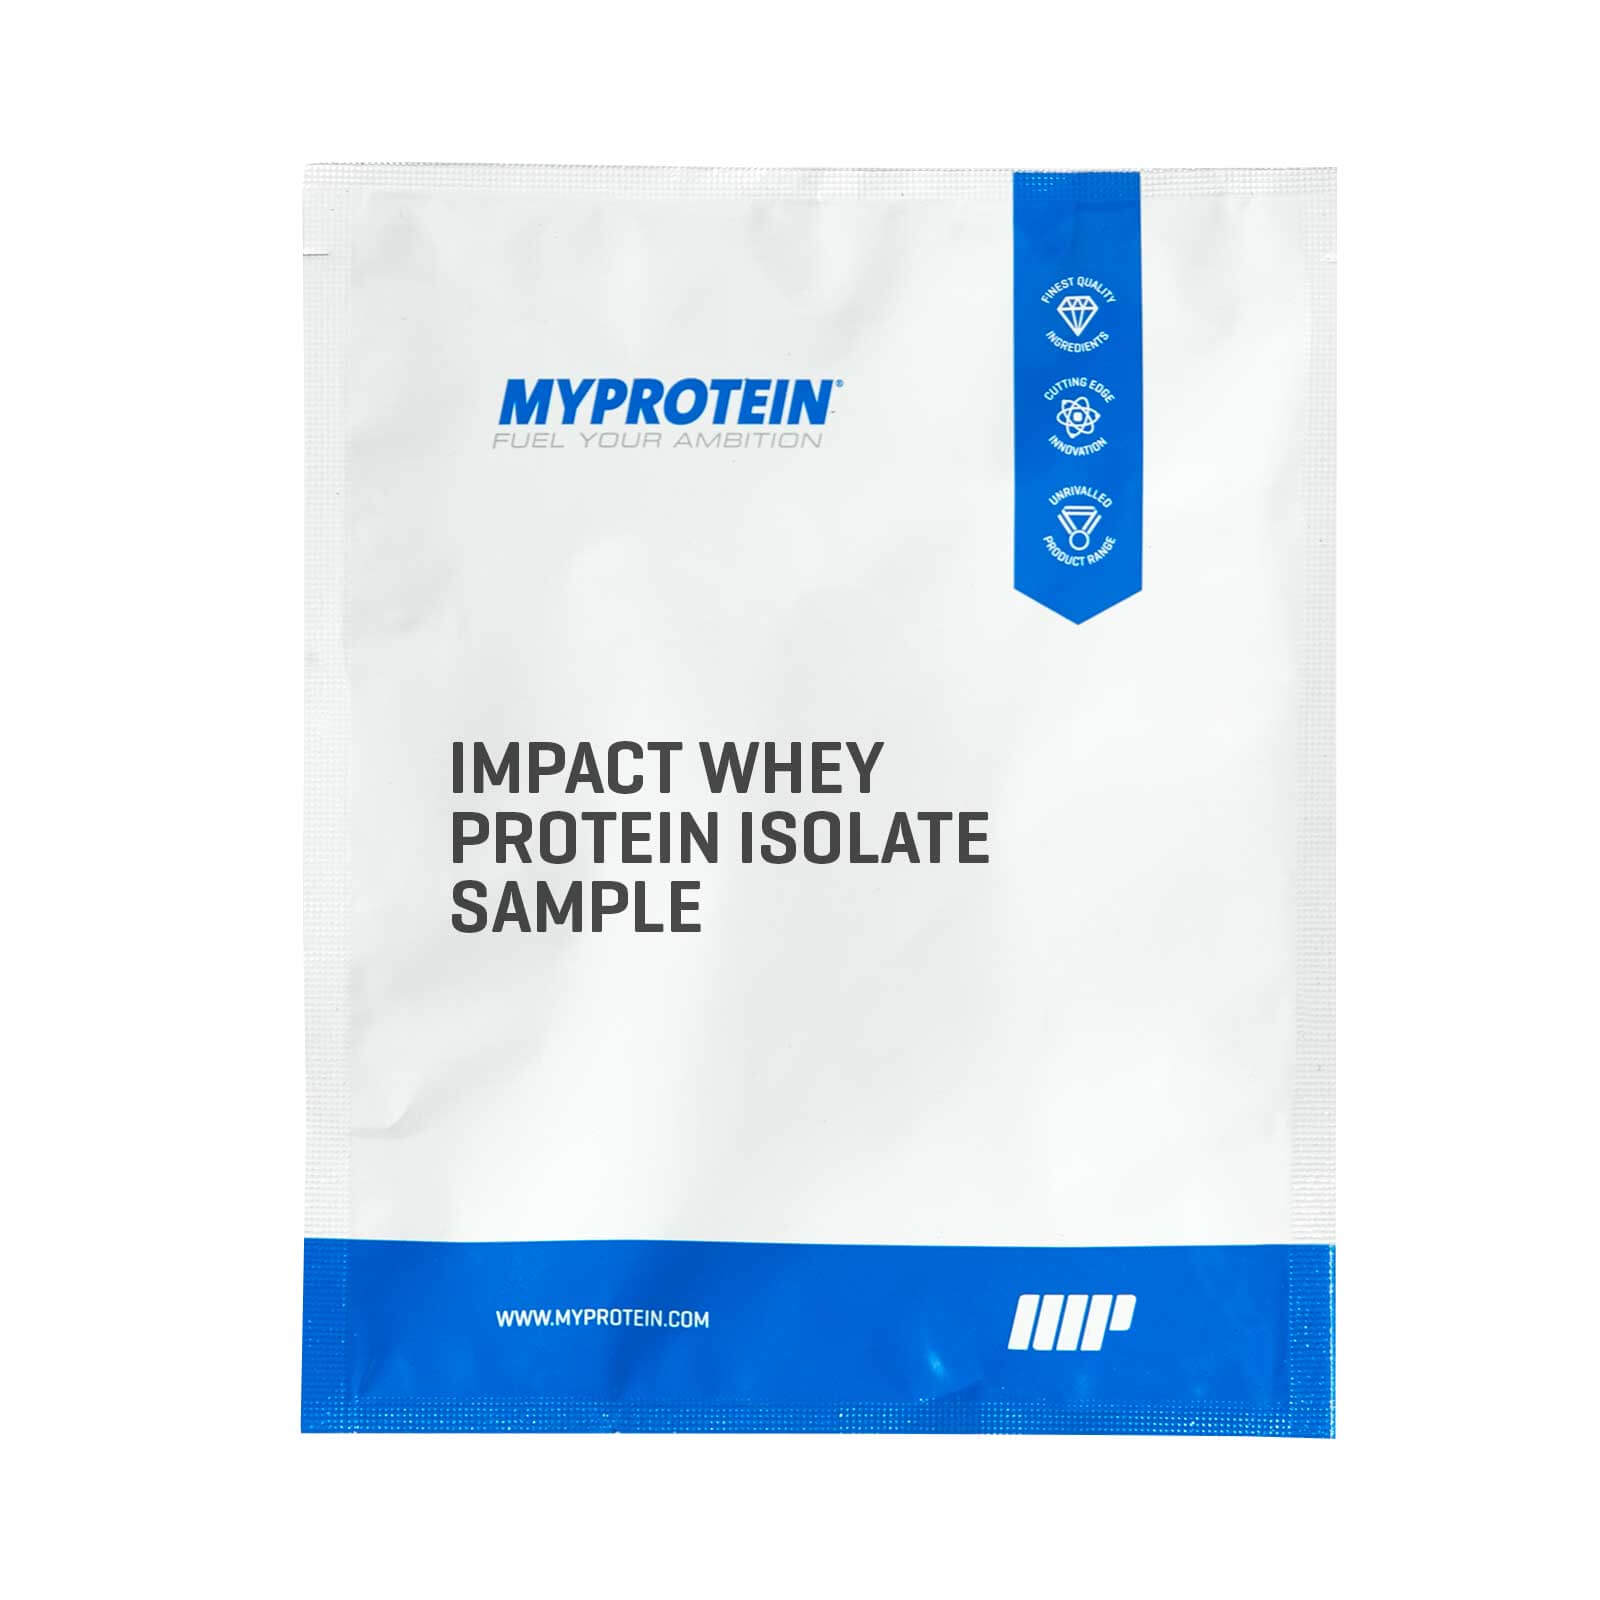 Impact Whey Isolate (Sample) - Vanilla - 0.9 Oz (USA)